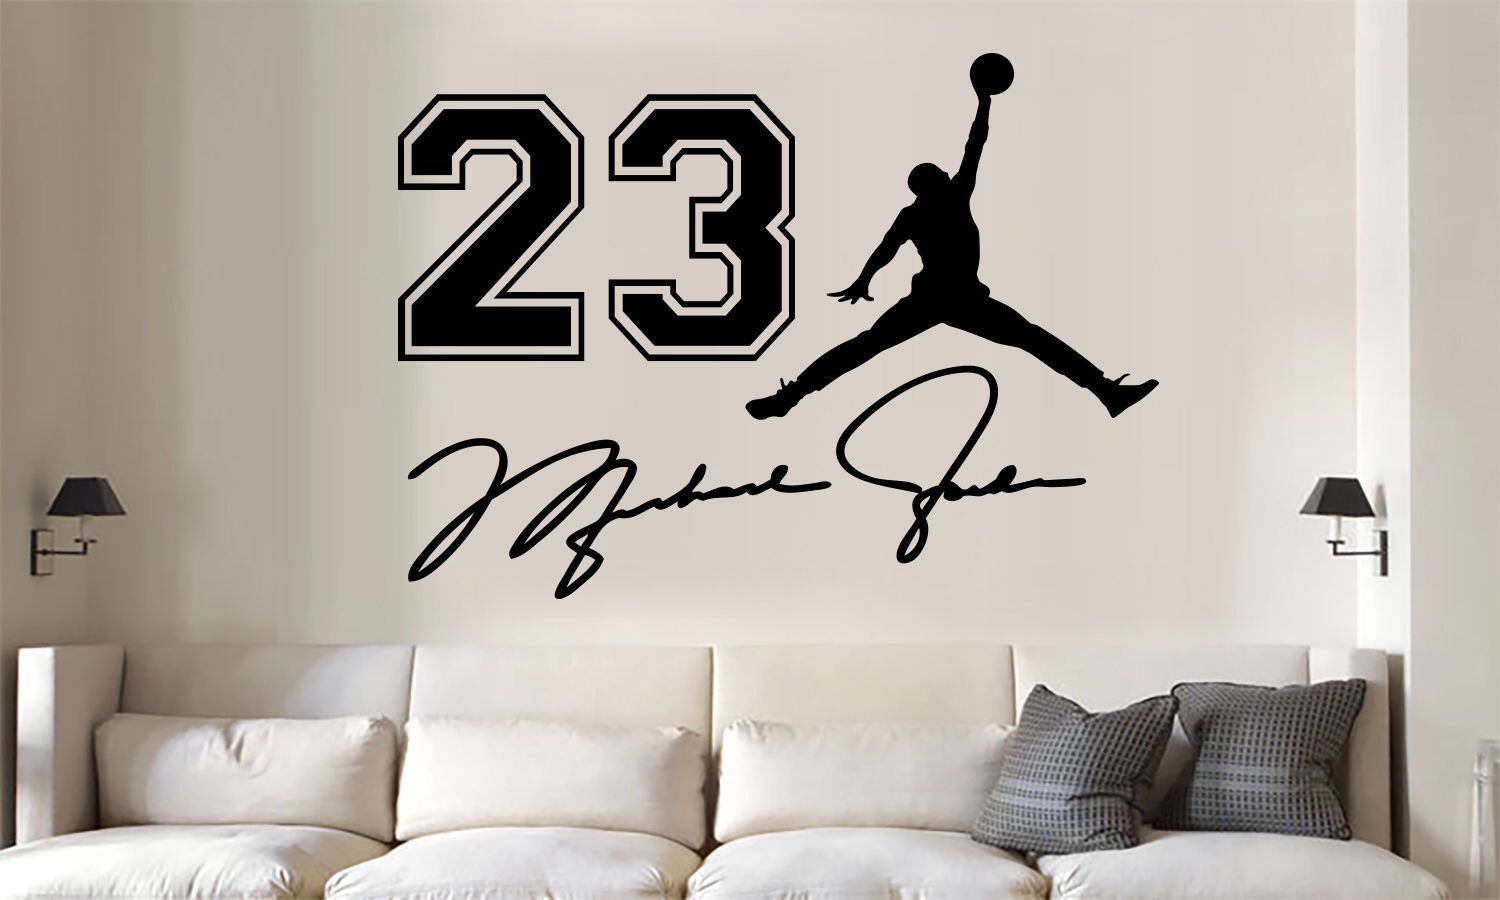 newest 66b4b e90f7 Michael Jordan jumpman jersey number auto Vinyl Wall Decal Words Sticker  3pc set by